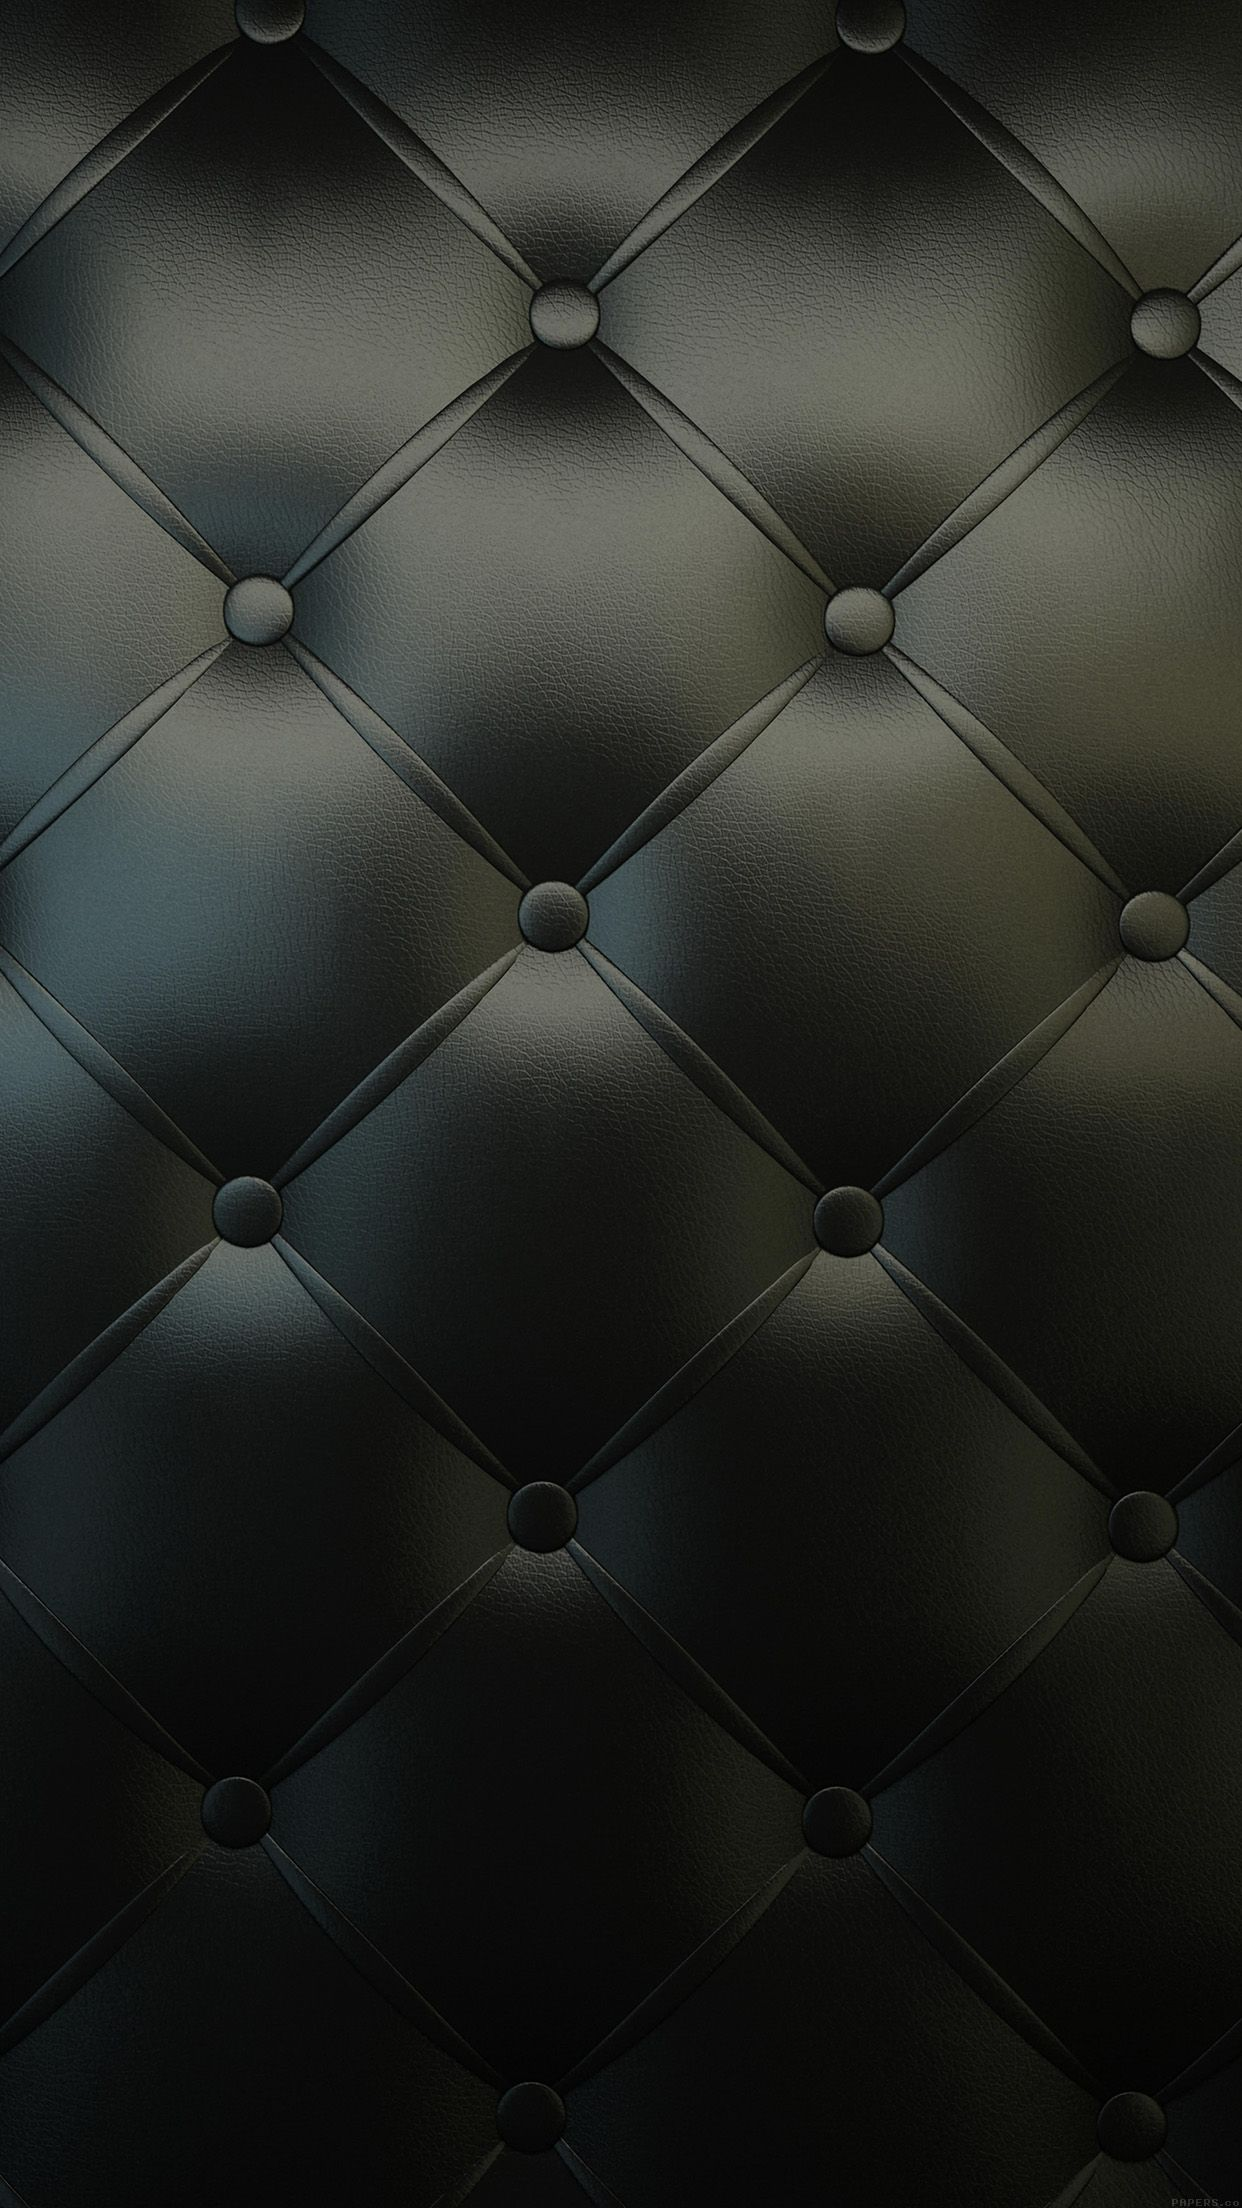 Black leather chair texture - 75 Creative Textures Iphone Wallpapers Free To Download